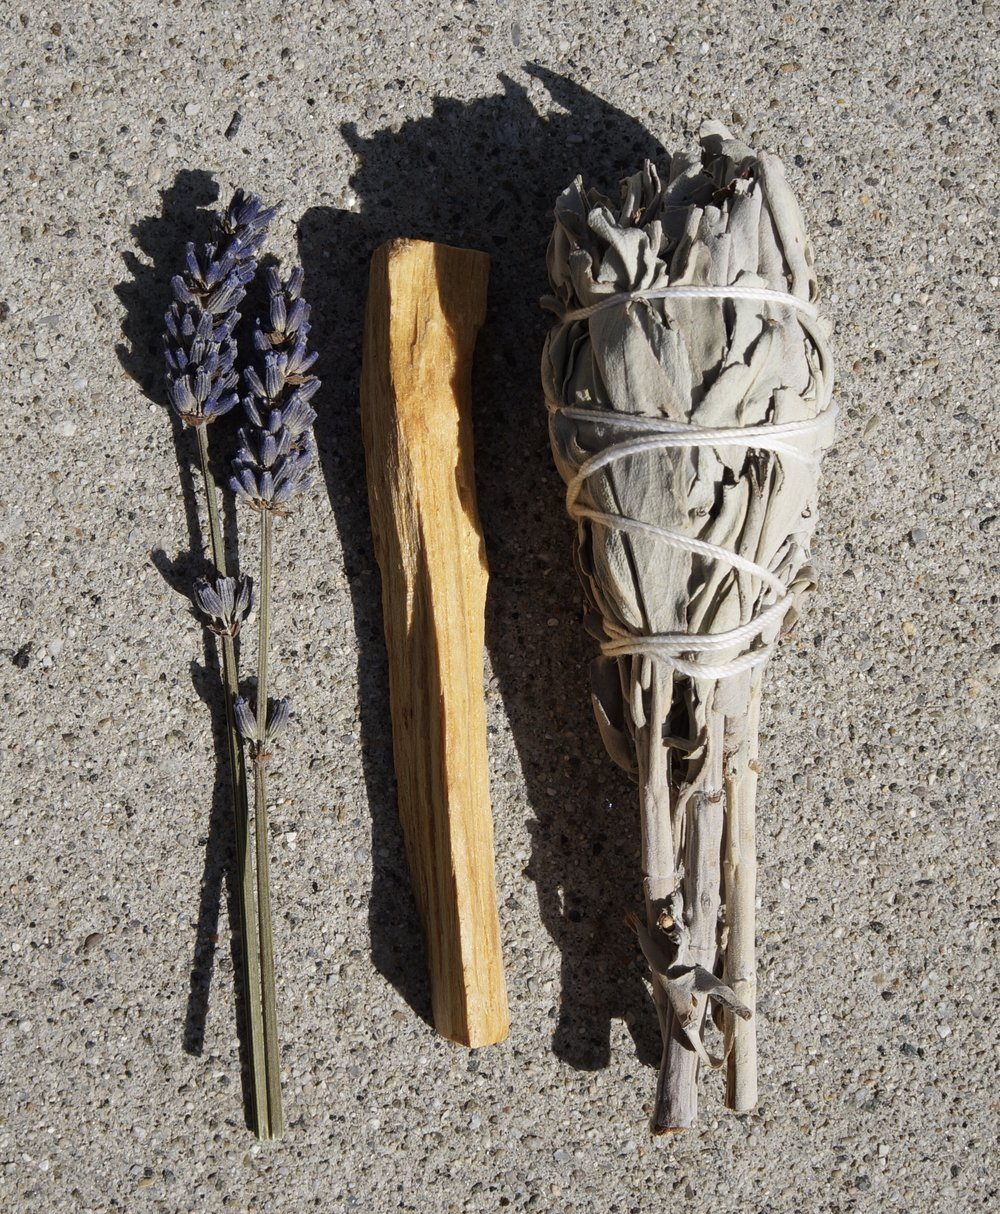 You can get your Smudge Kit here!